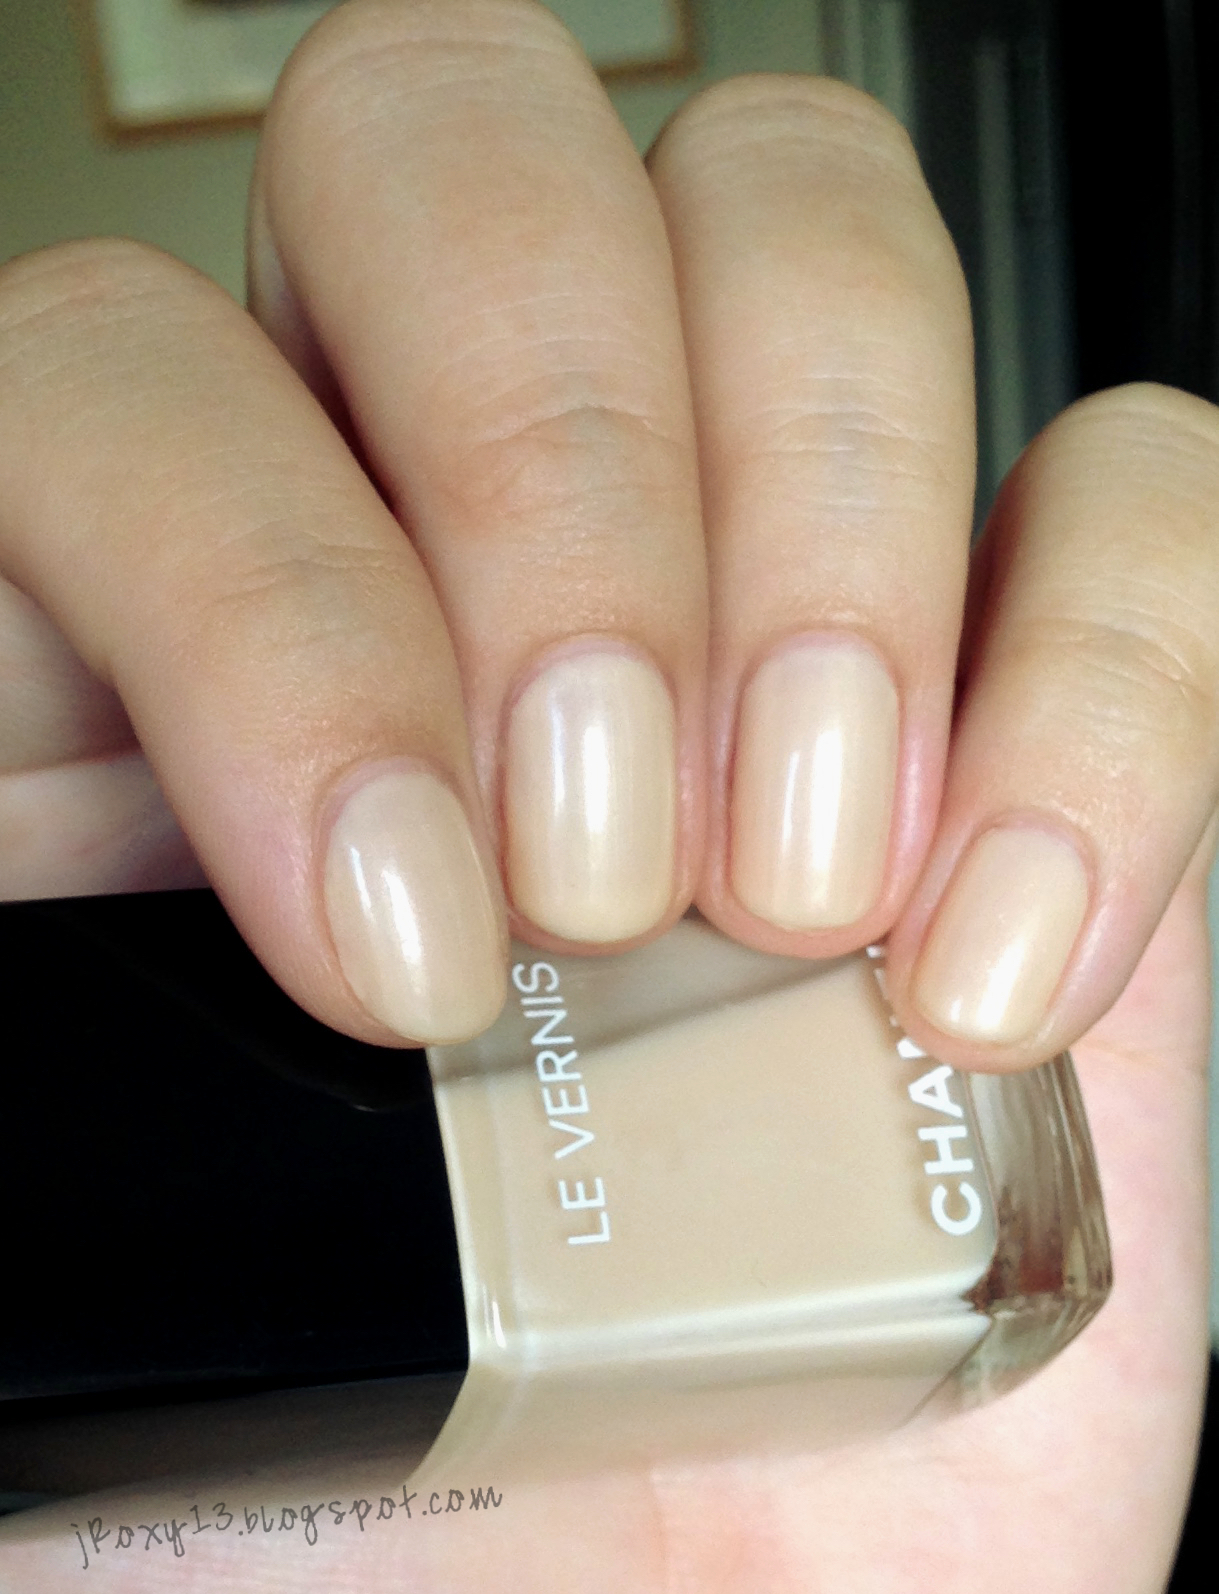 Chanel In 546 Rouge Red 548 Blanc White 556 Beige Beige And Le Top Coat Top Coat Teint 233 In